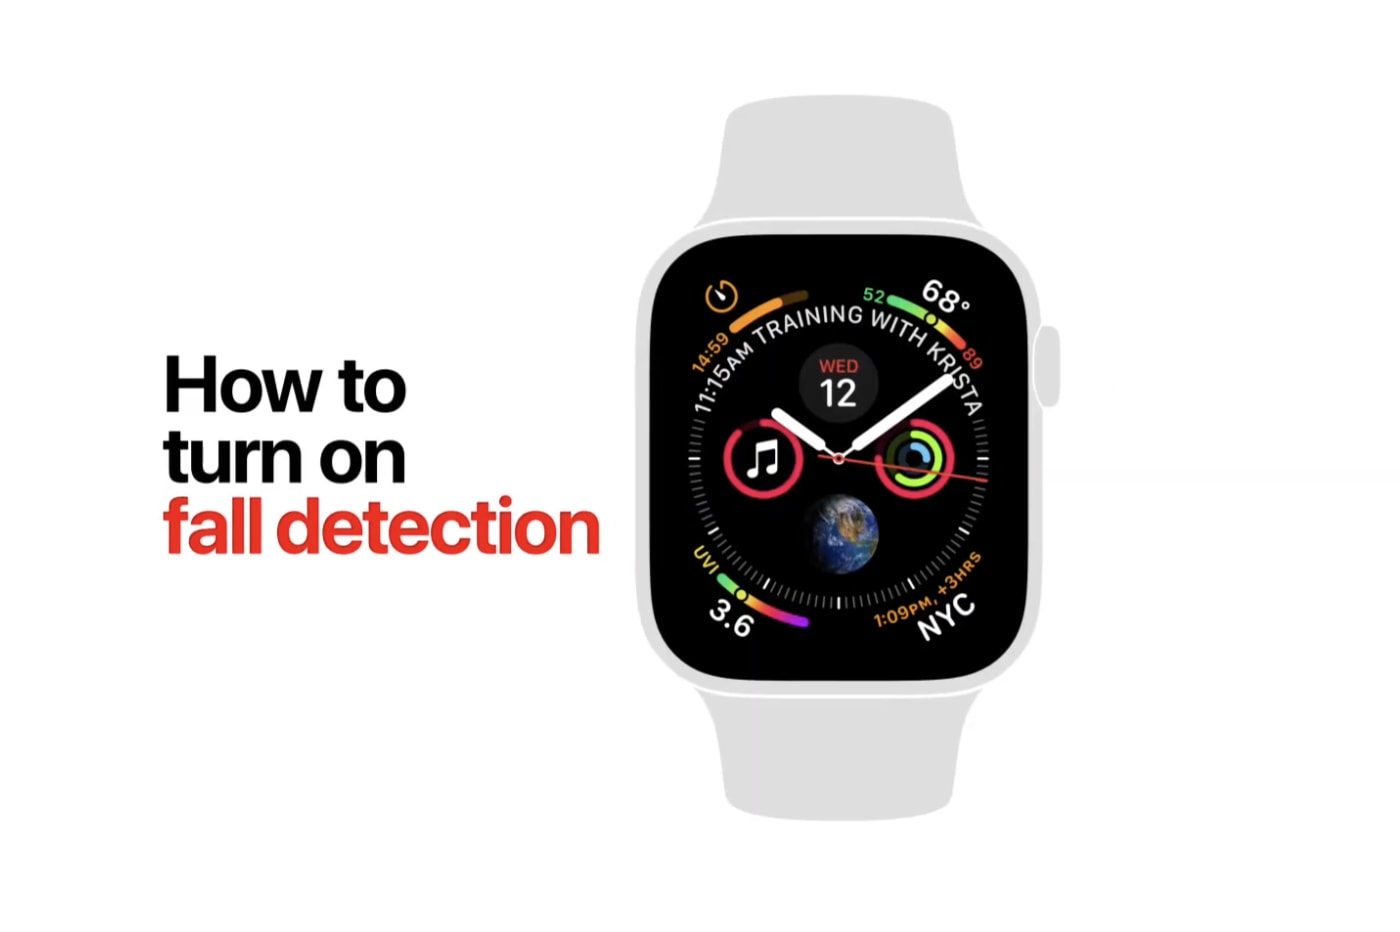 Fall detection ad from Apple